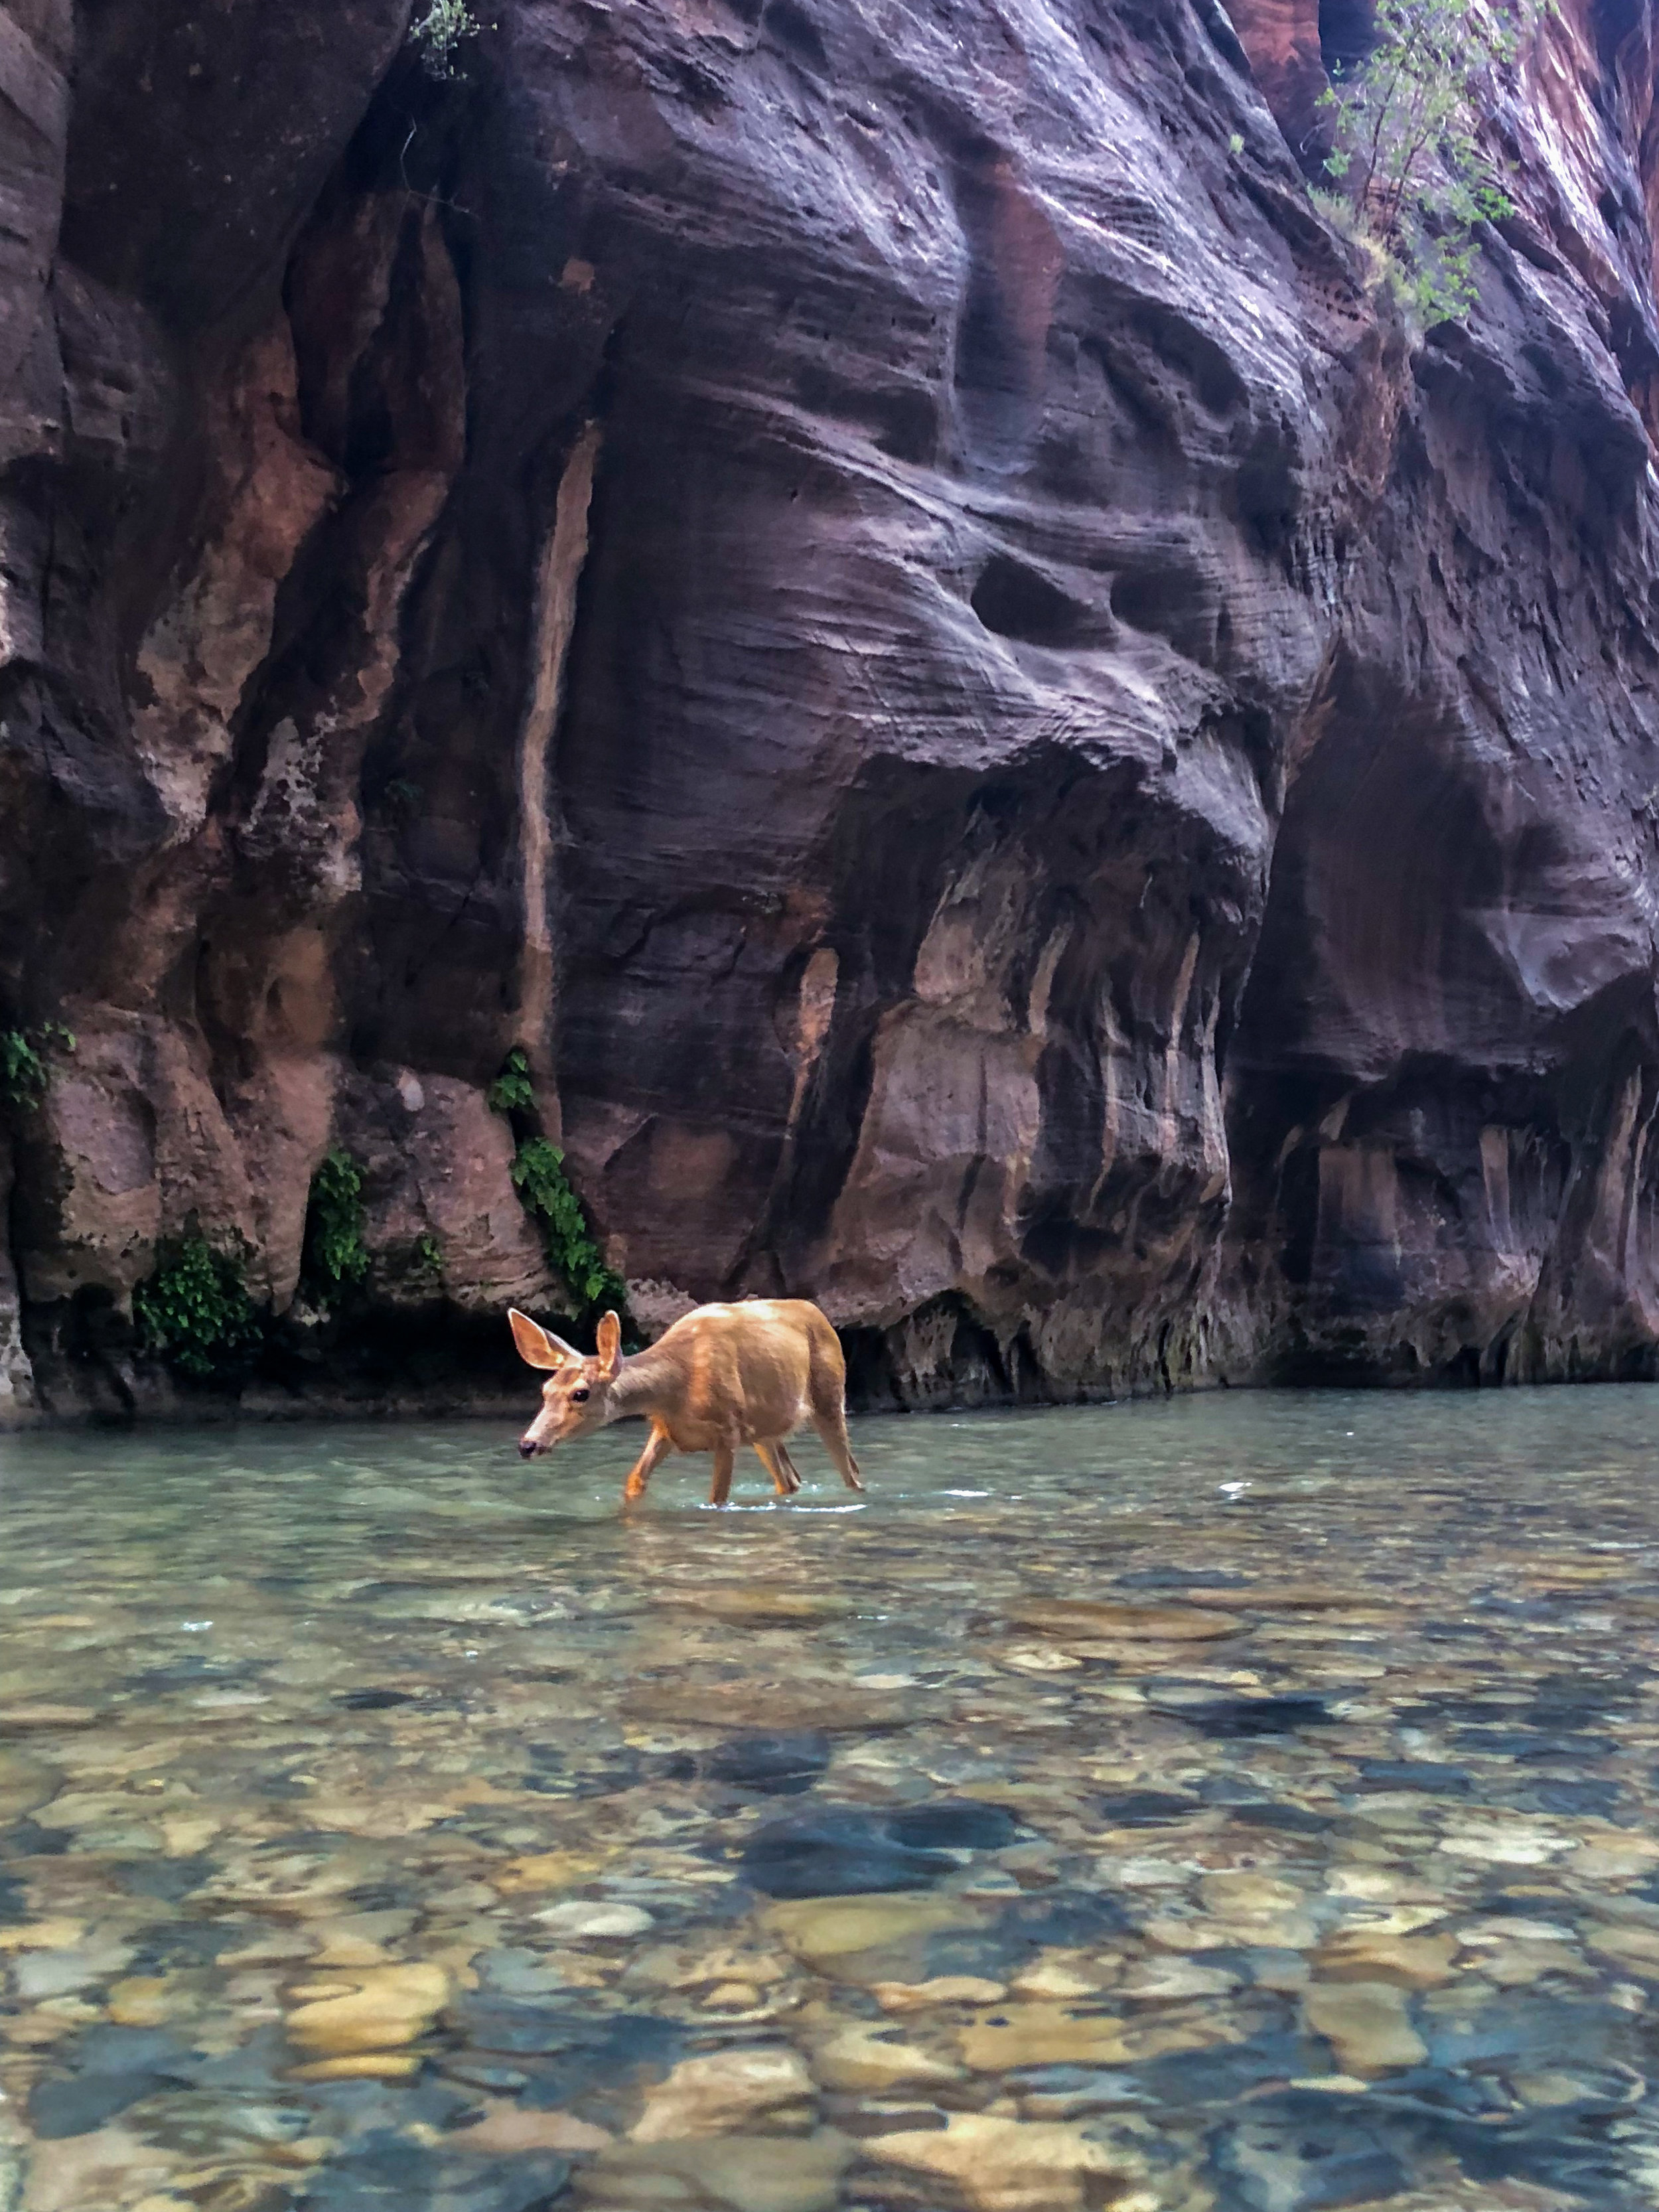 It was dead silent aside from the sound of bubbling water, and all of the sudden this beautiful deer comes walking past us down river. So serene.